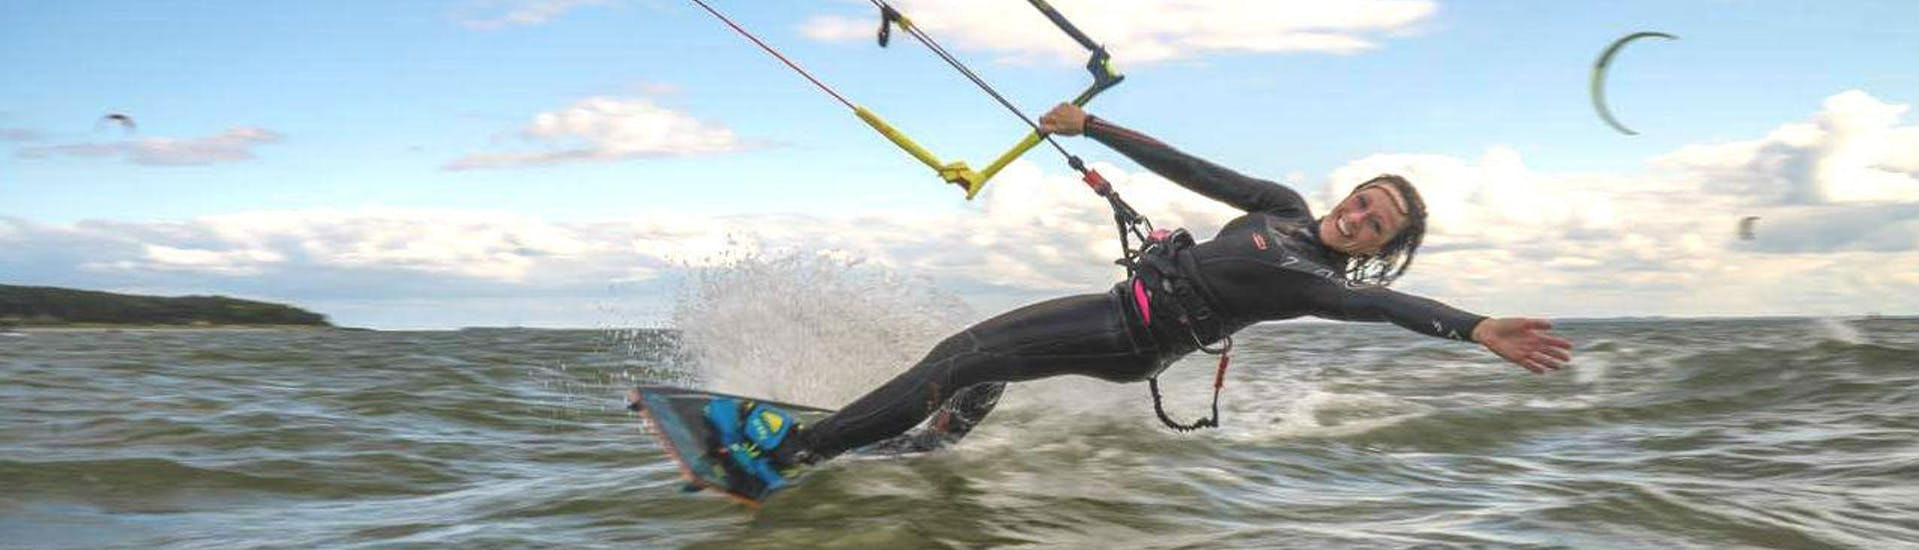 Private Kitesurfing Lesson - Thiessow